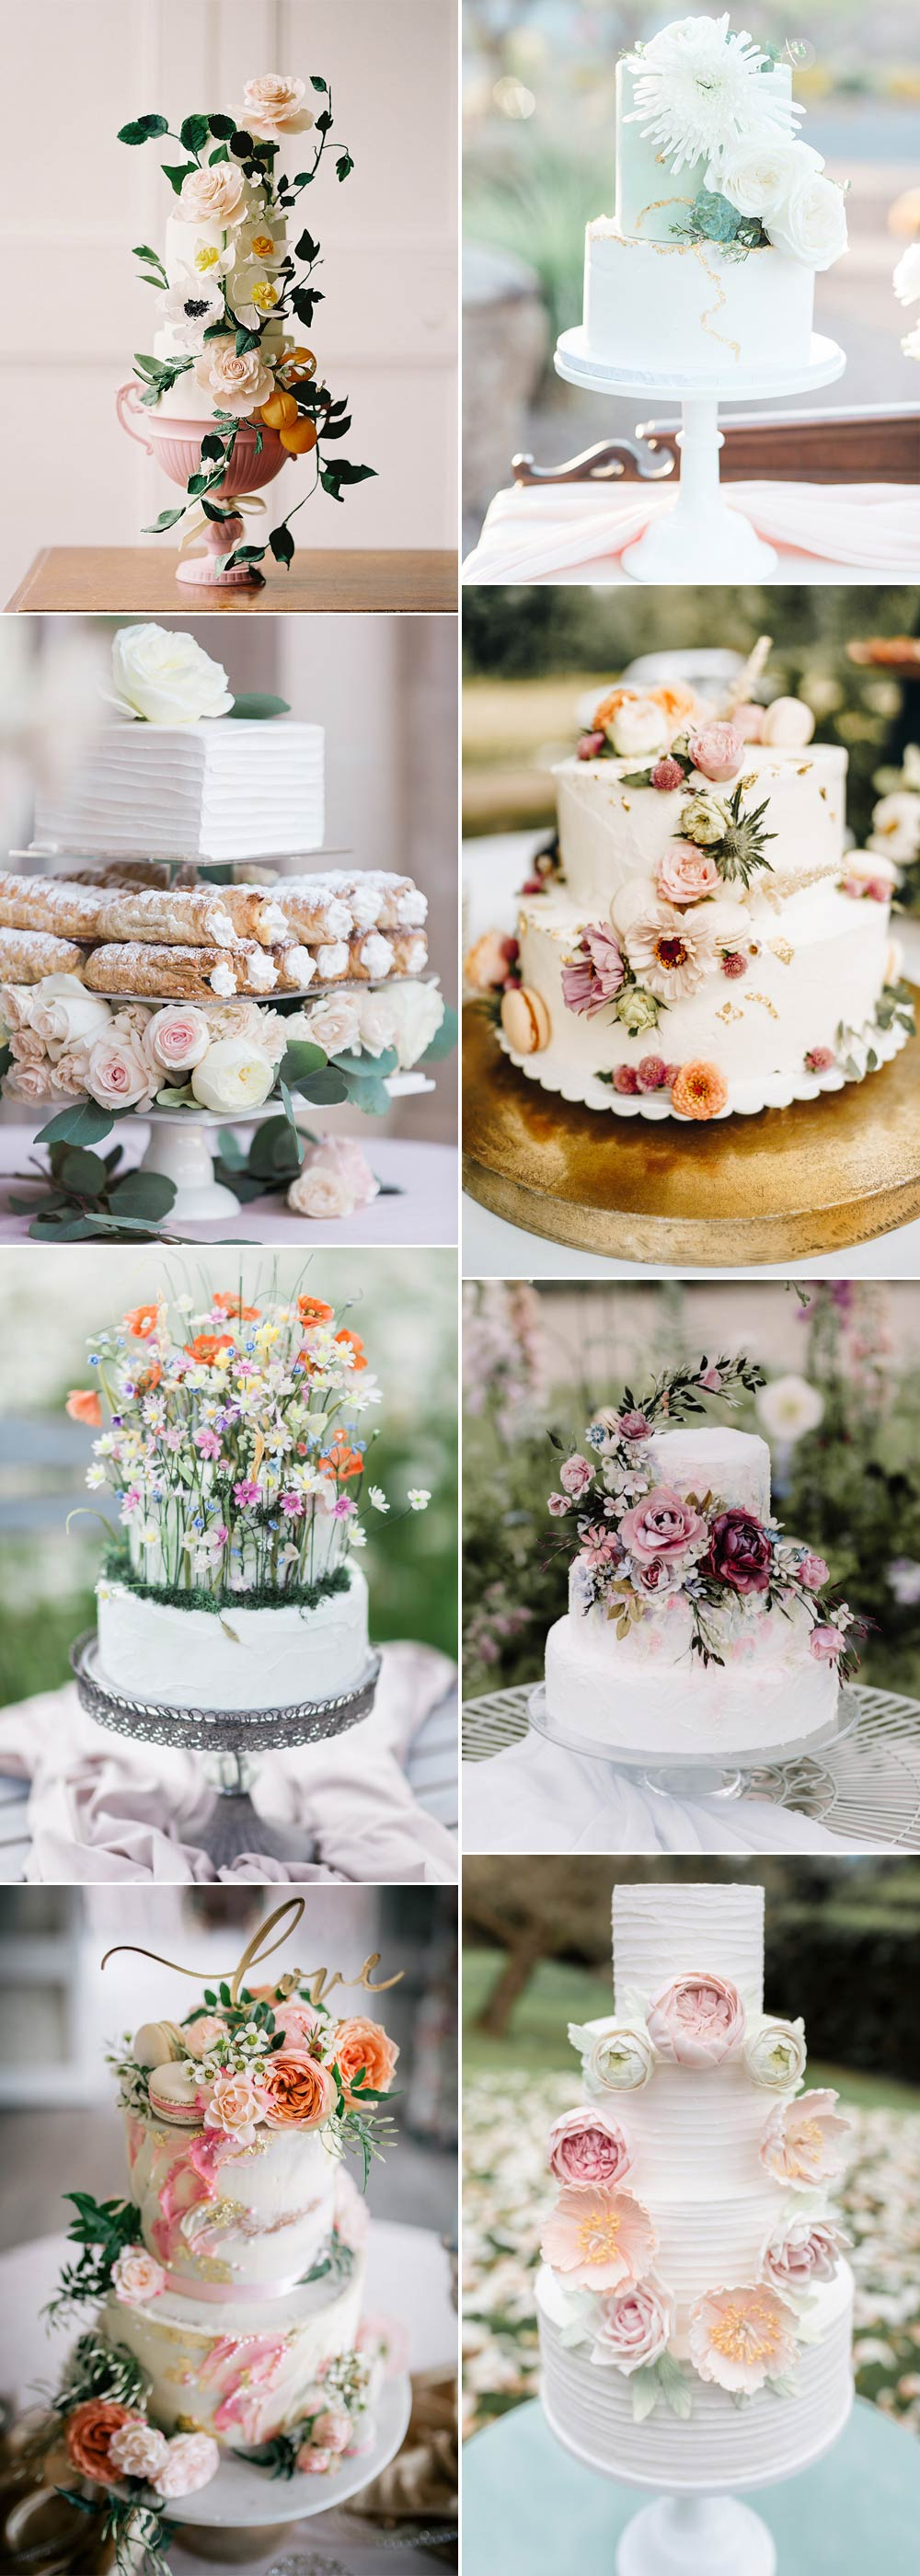 floral wedding cakes for spring